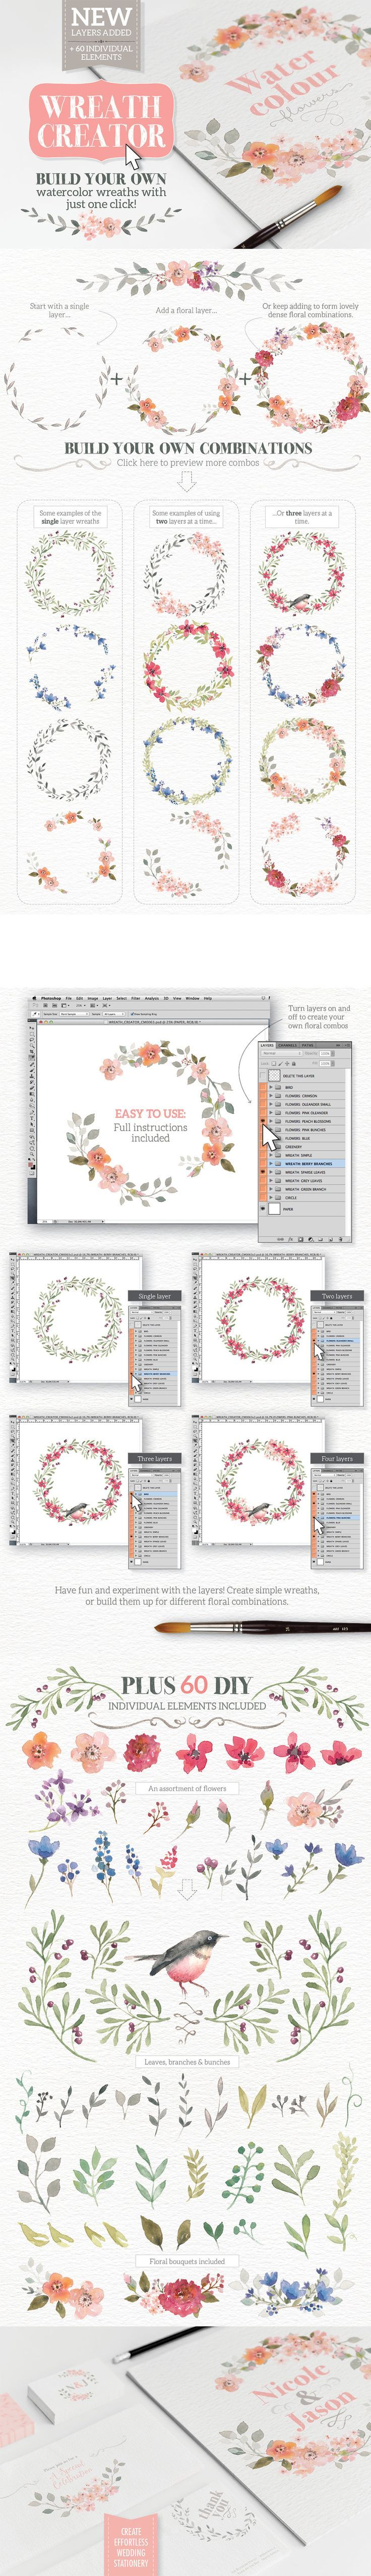 New All In One Design Bundle from @designcutsdeals!: